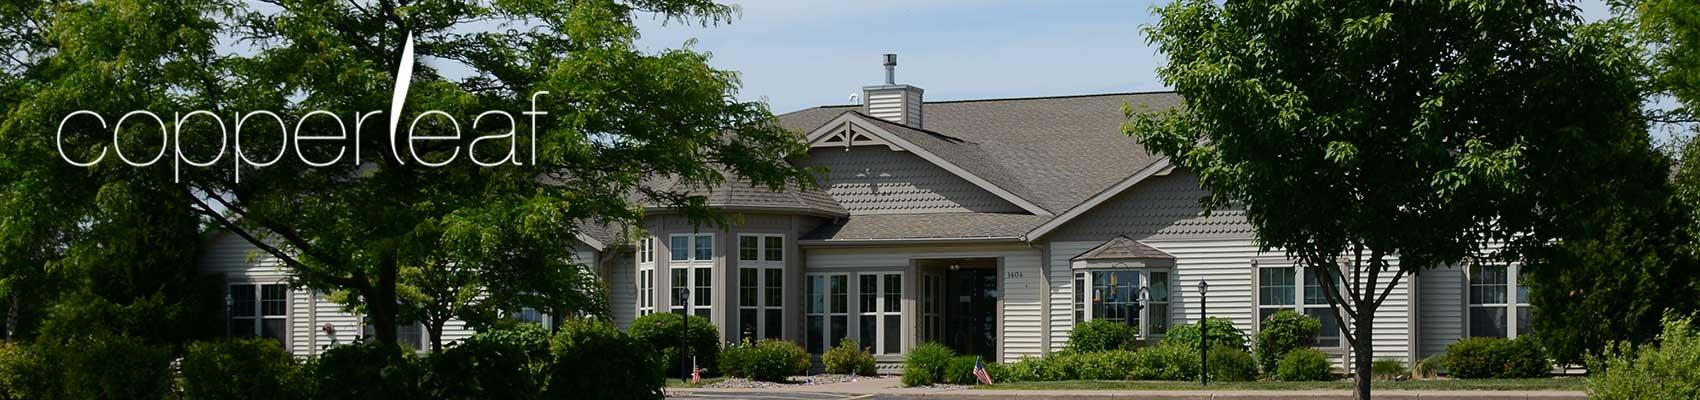 senior assisted living in Kalinke Wisconsin Marathon County